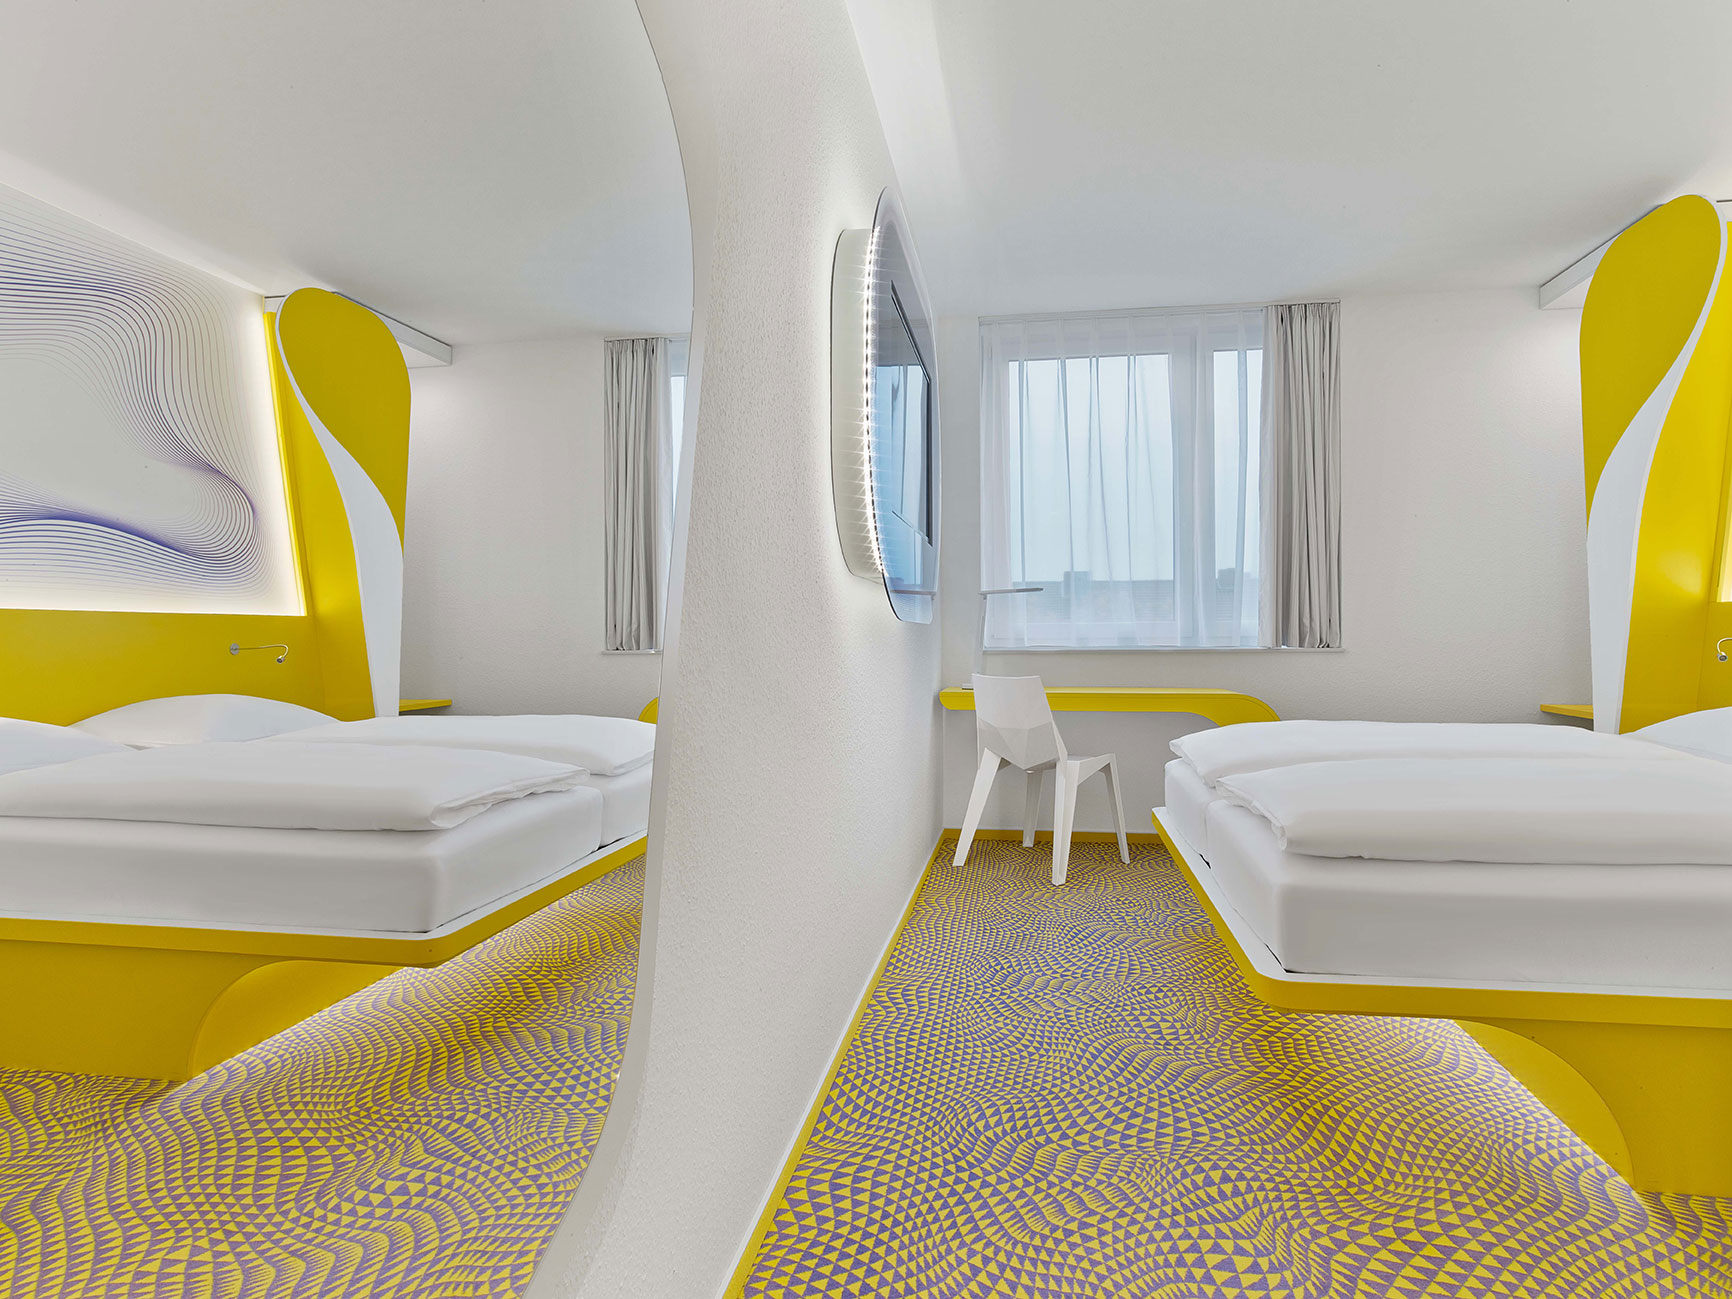 1,80 x 2,00m High-Comfort-Bed at prizeotel Hannover-City